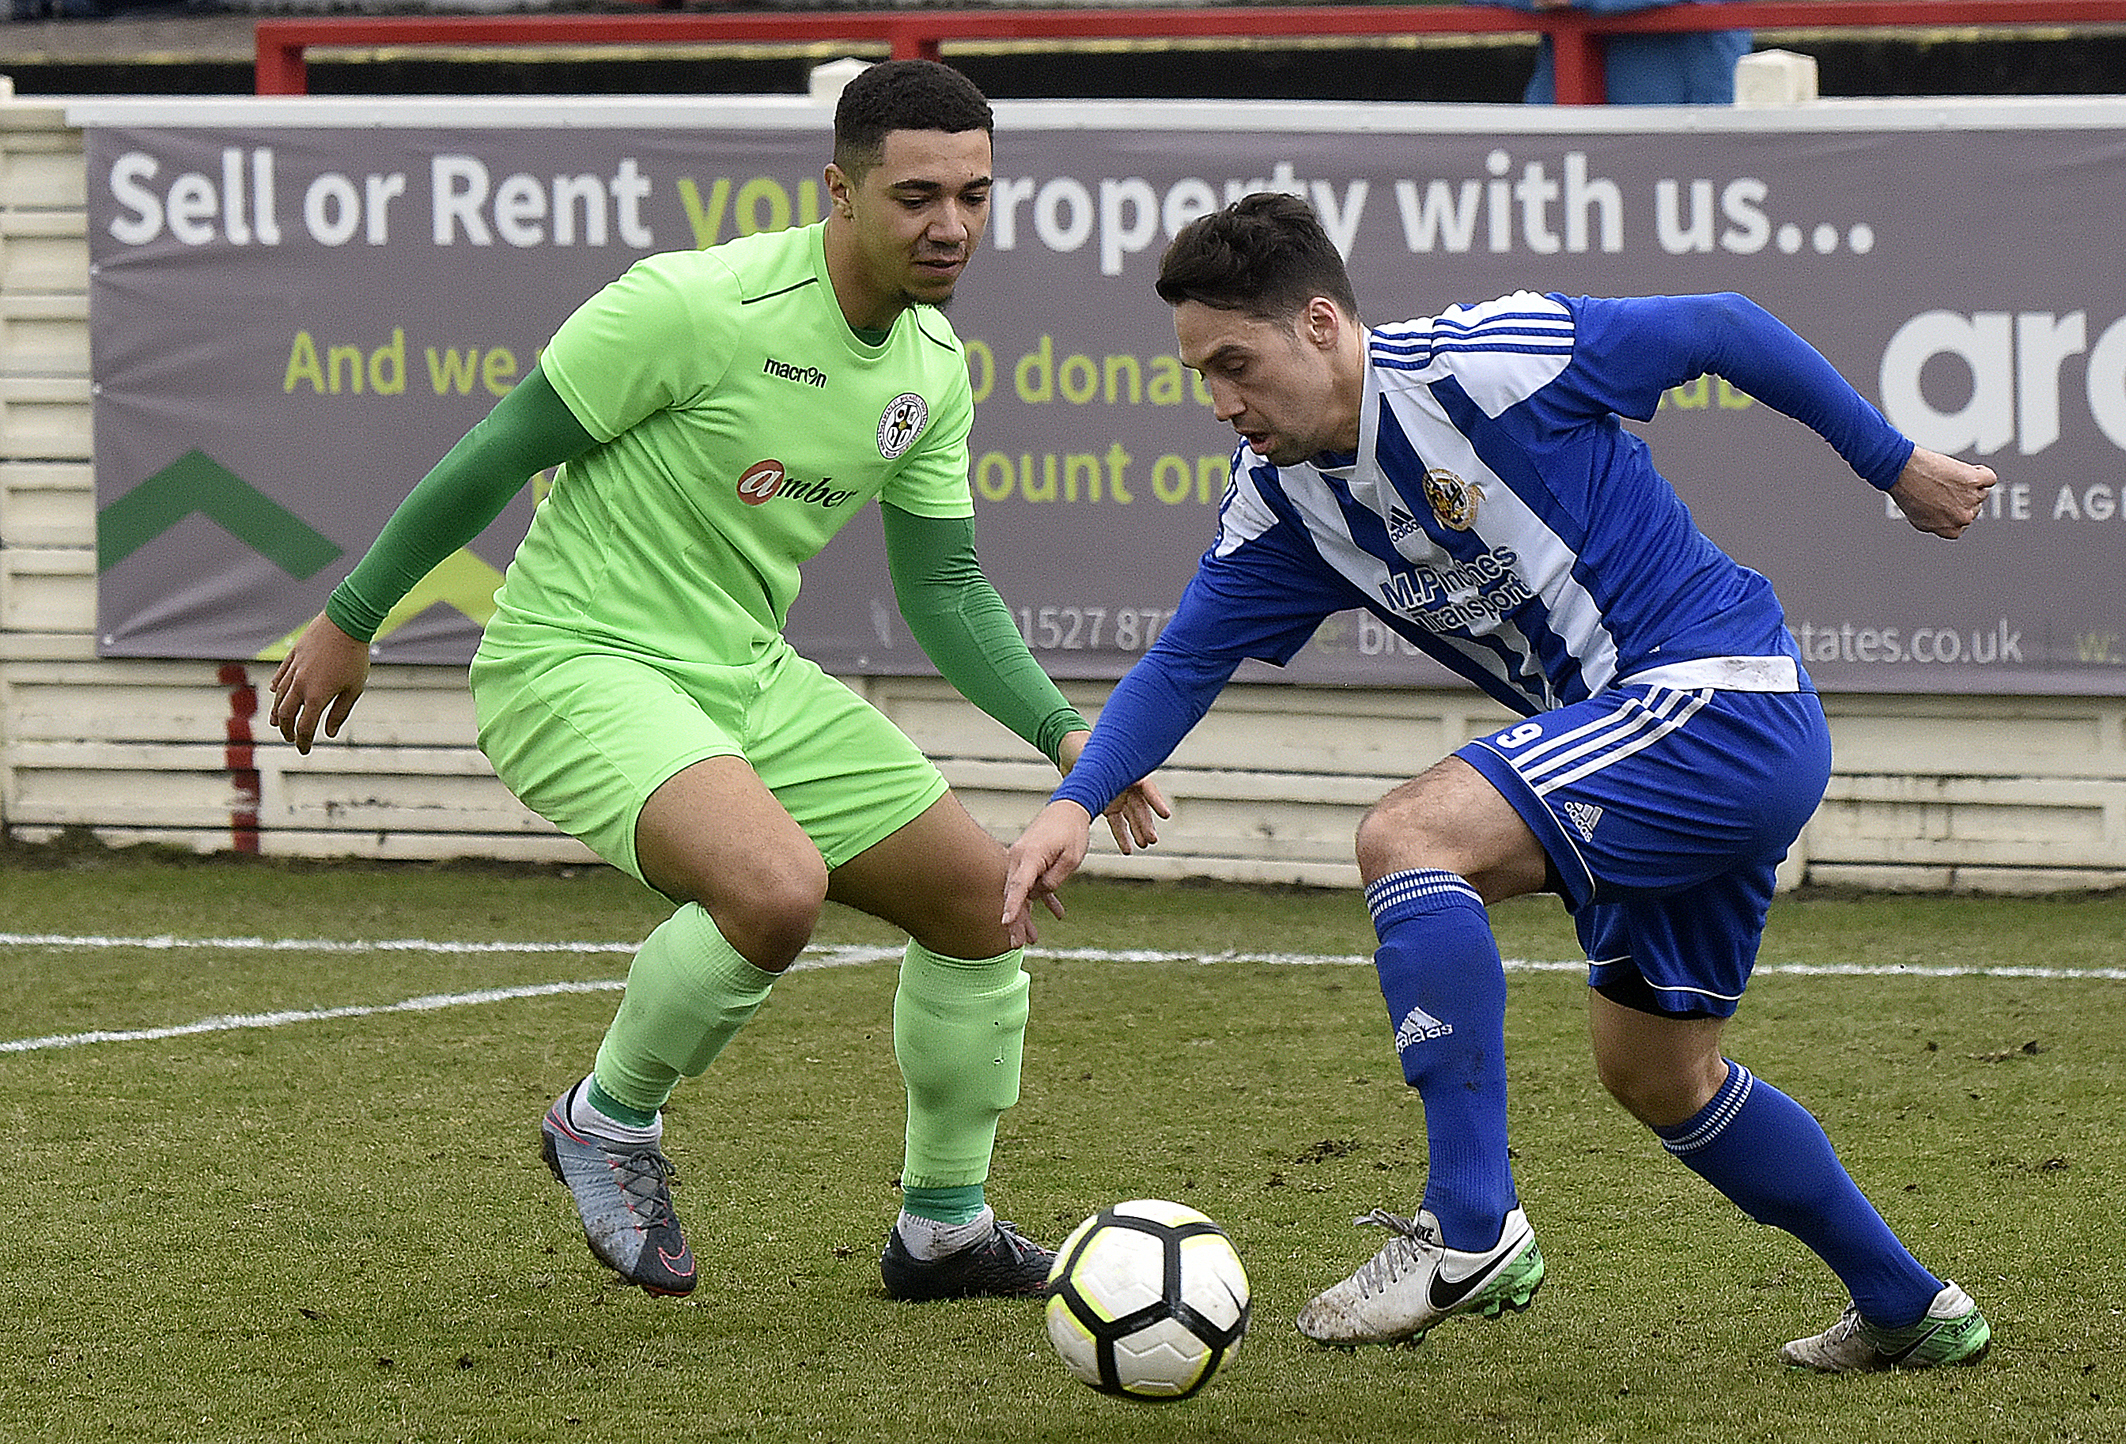 MOVING ON: Mark Danks is leaving Worcester City